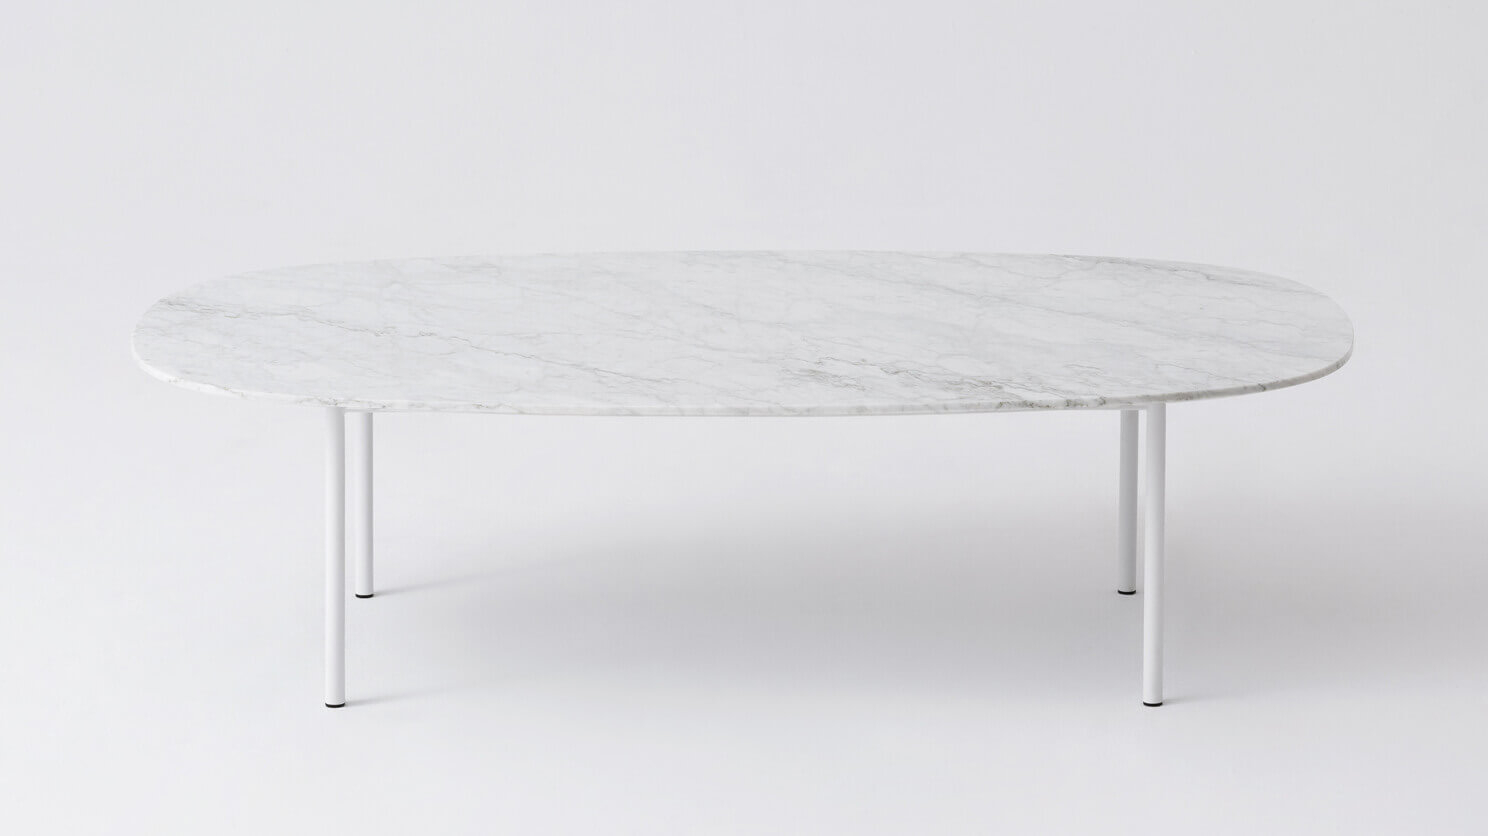 River Oval Coffee Table intended for size 1488 X 836